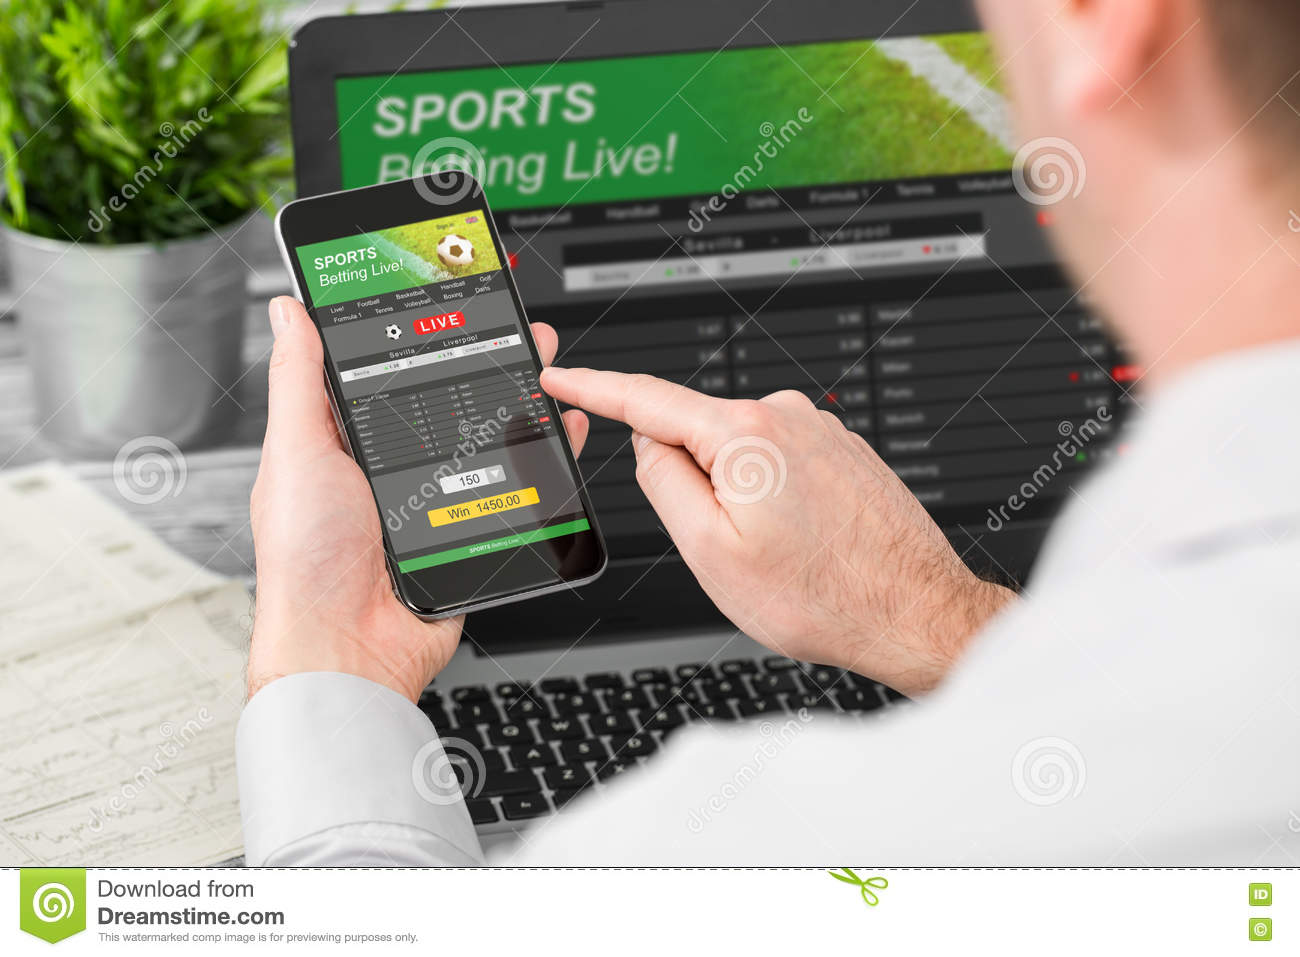 Bet sports credit by phone number mlb 1st 5 innings bettingadvice